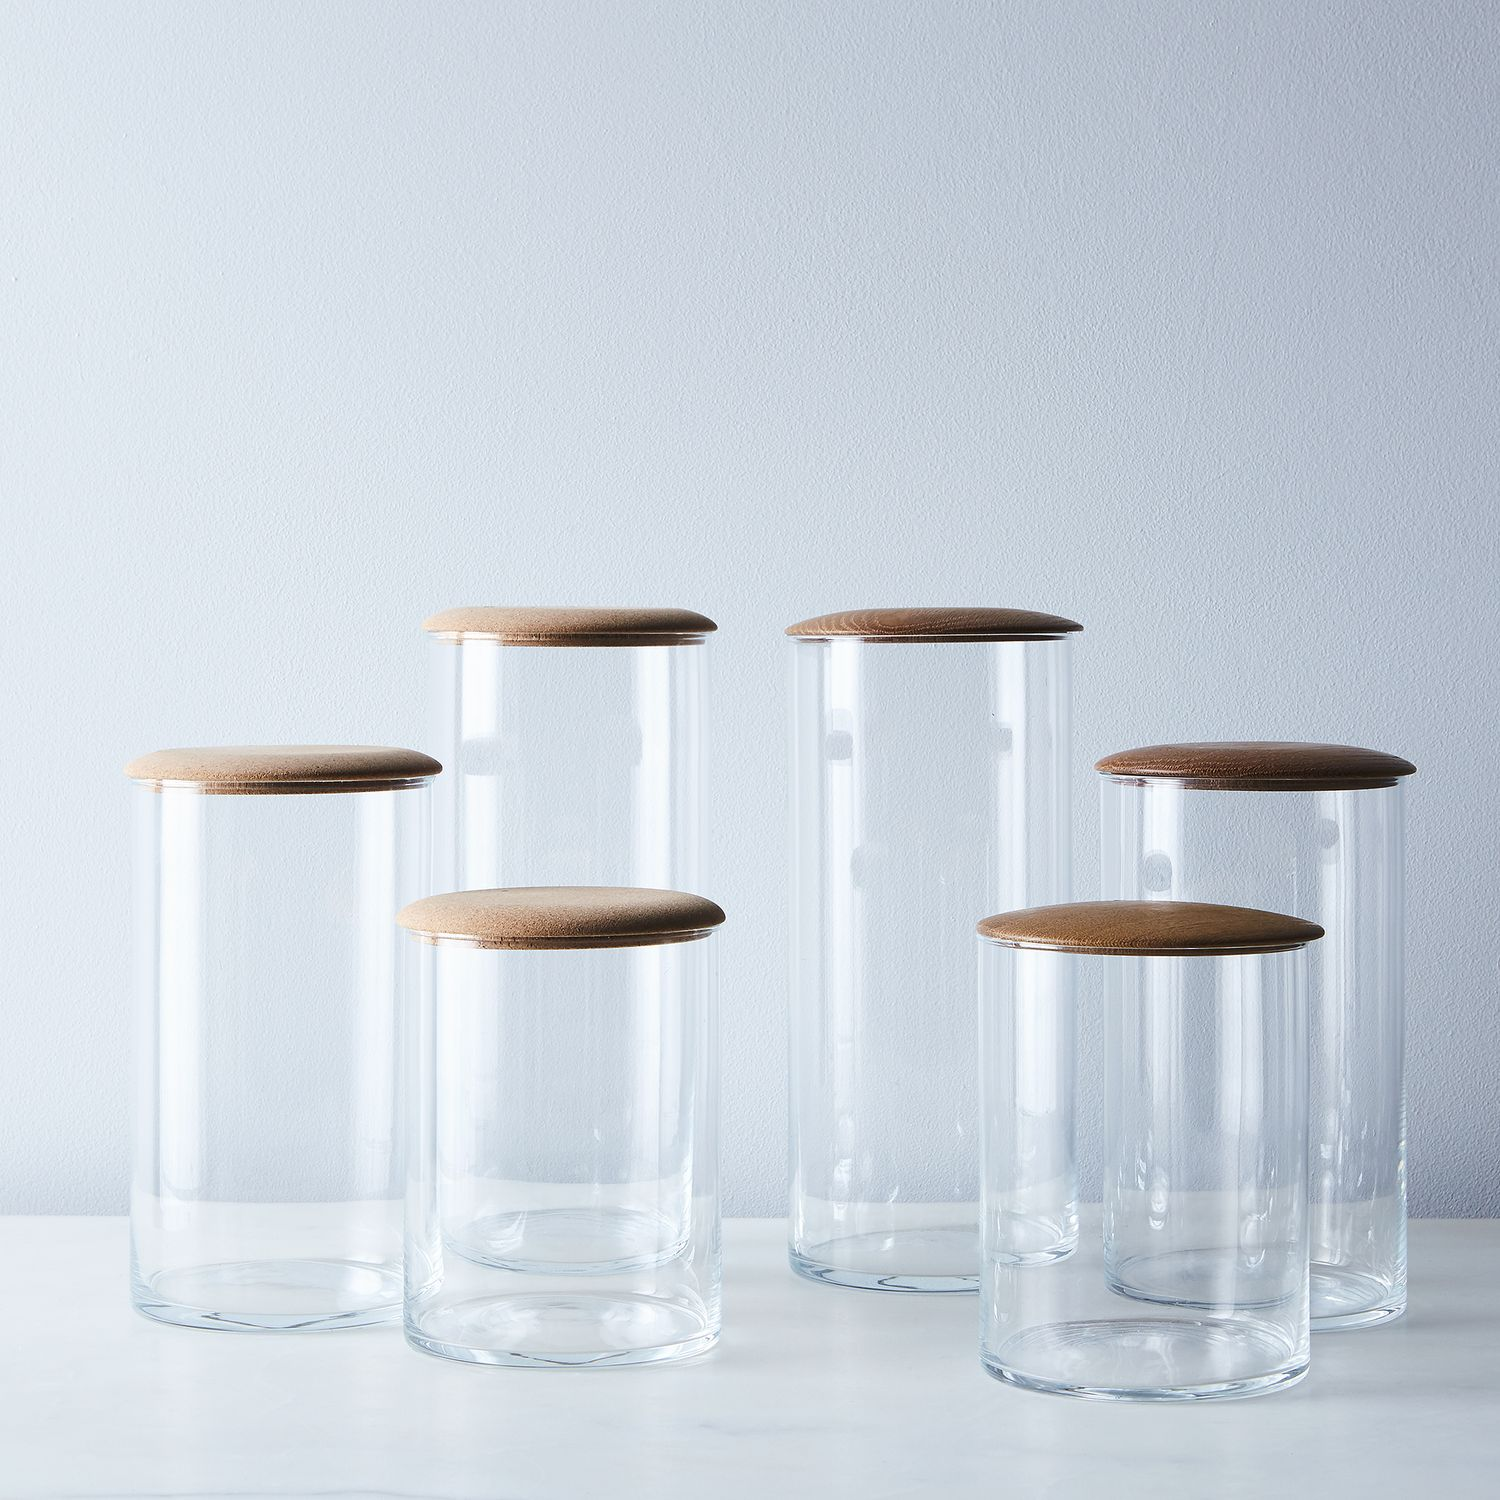 Glass Simple Storage Containers On Food52. Bad Kitchen Tile Jobs. Kitchen Furniture Uk. Kitchen And Dining Gift Ideas. Kitchen Countertops Upland Ca. Kitchen Wall Without Tiles. Paint Your Kitchen Cabinets White. Dark Wood Kitchen End Panel. Kitchen Storage Wall Cabinets